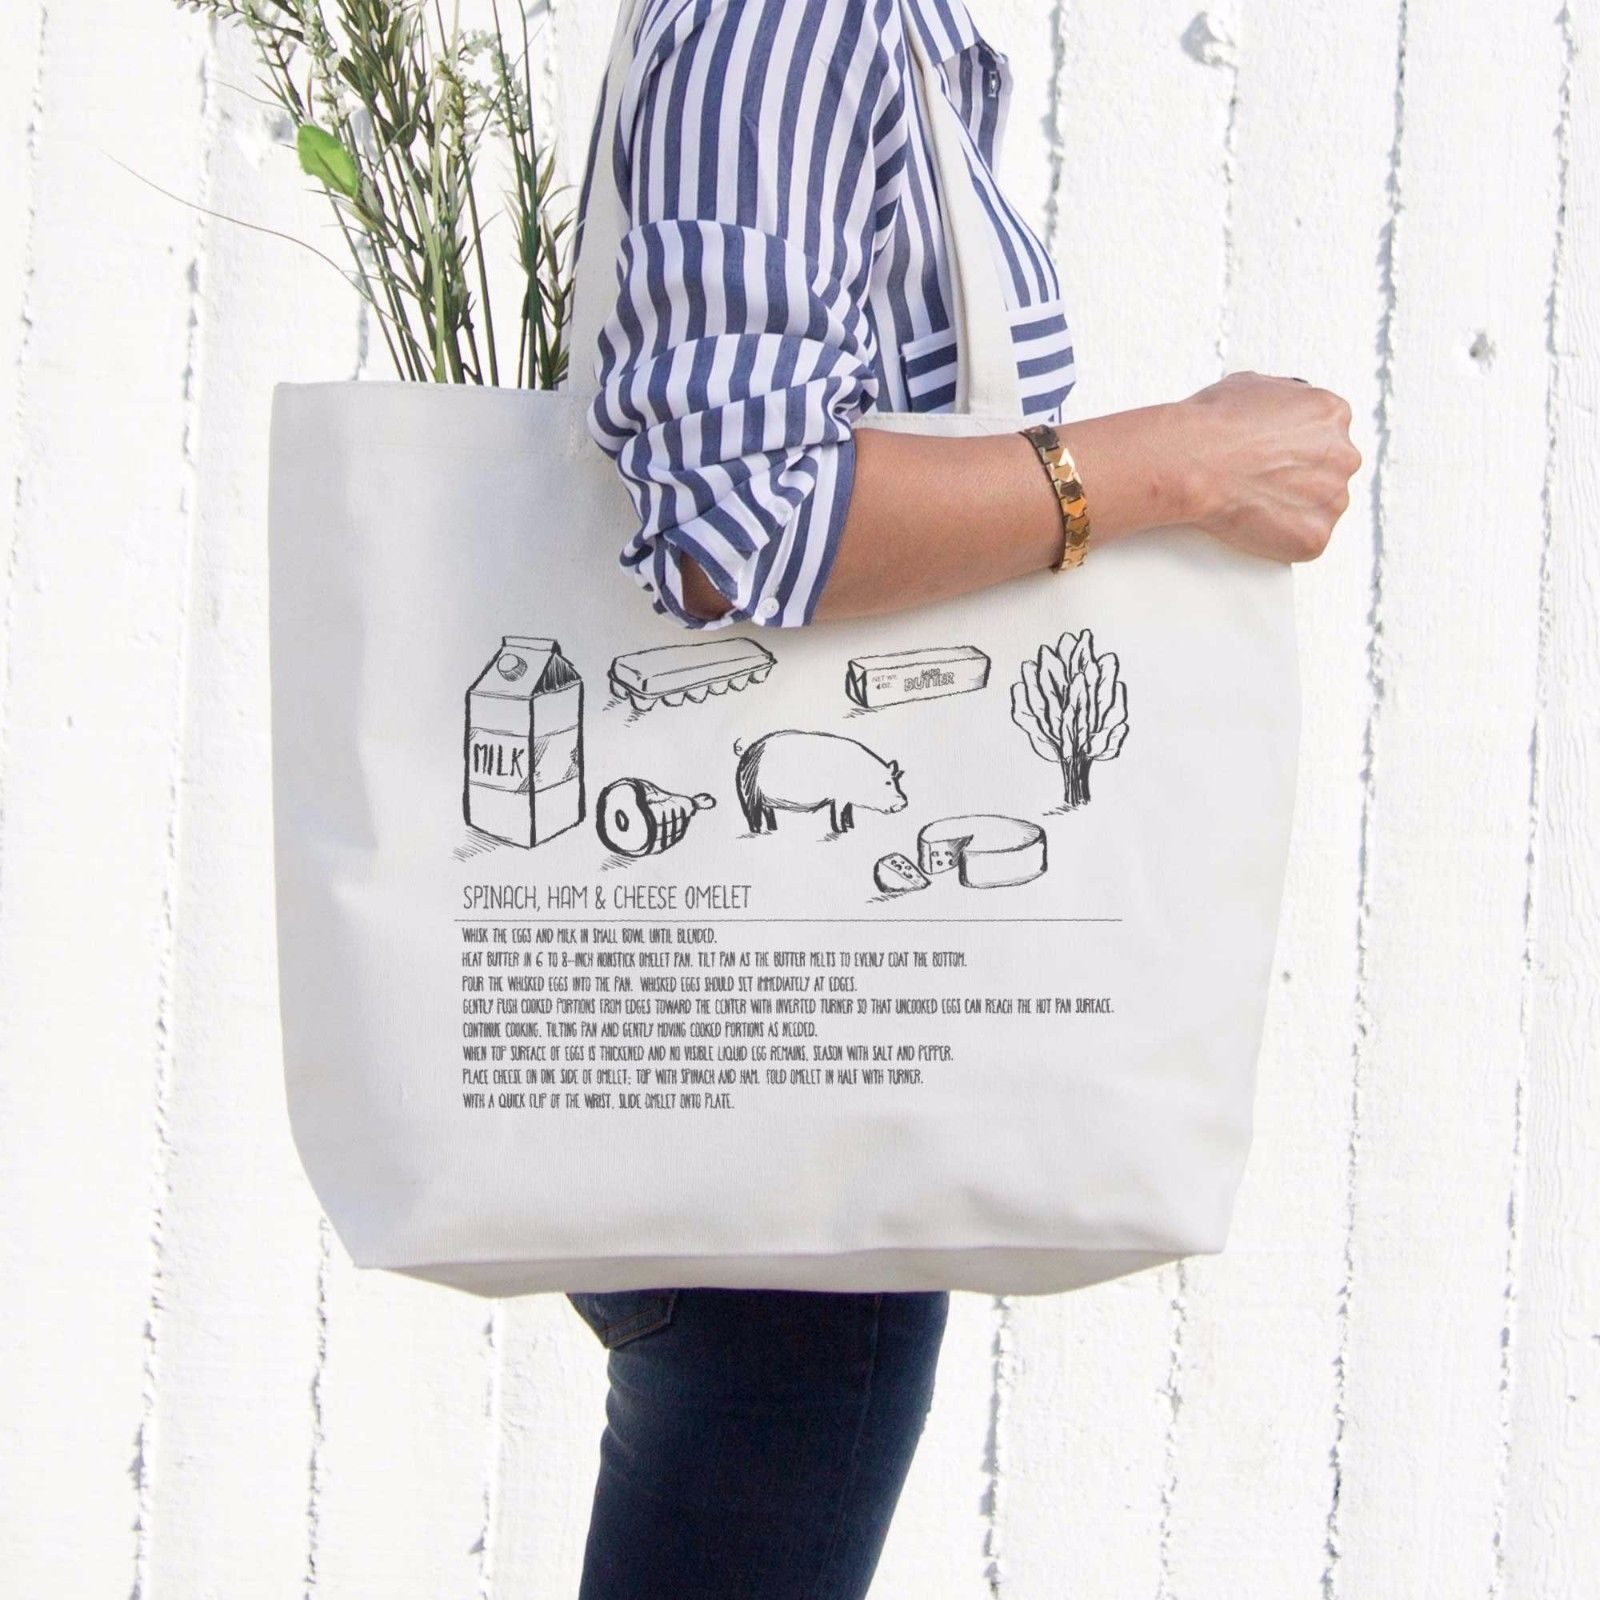 Omelet Recipe Canvas Bag Grocery Bag Diaper Bag Mothers Day Gifts For Moms